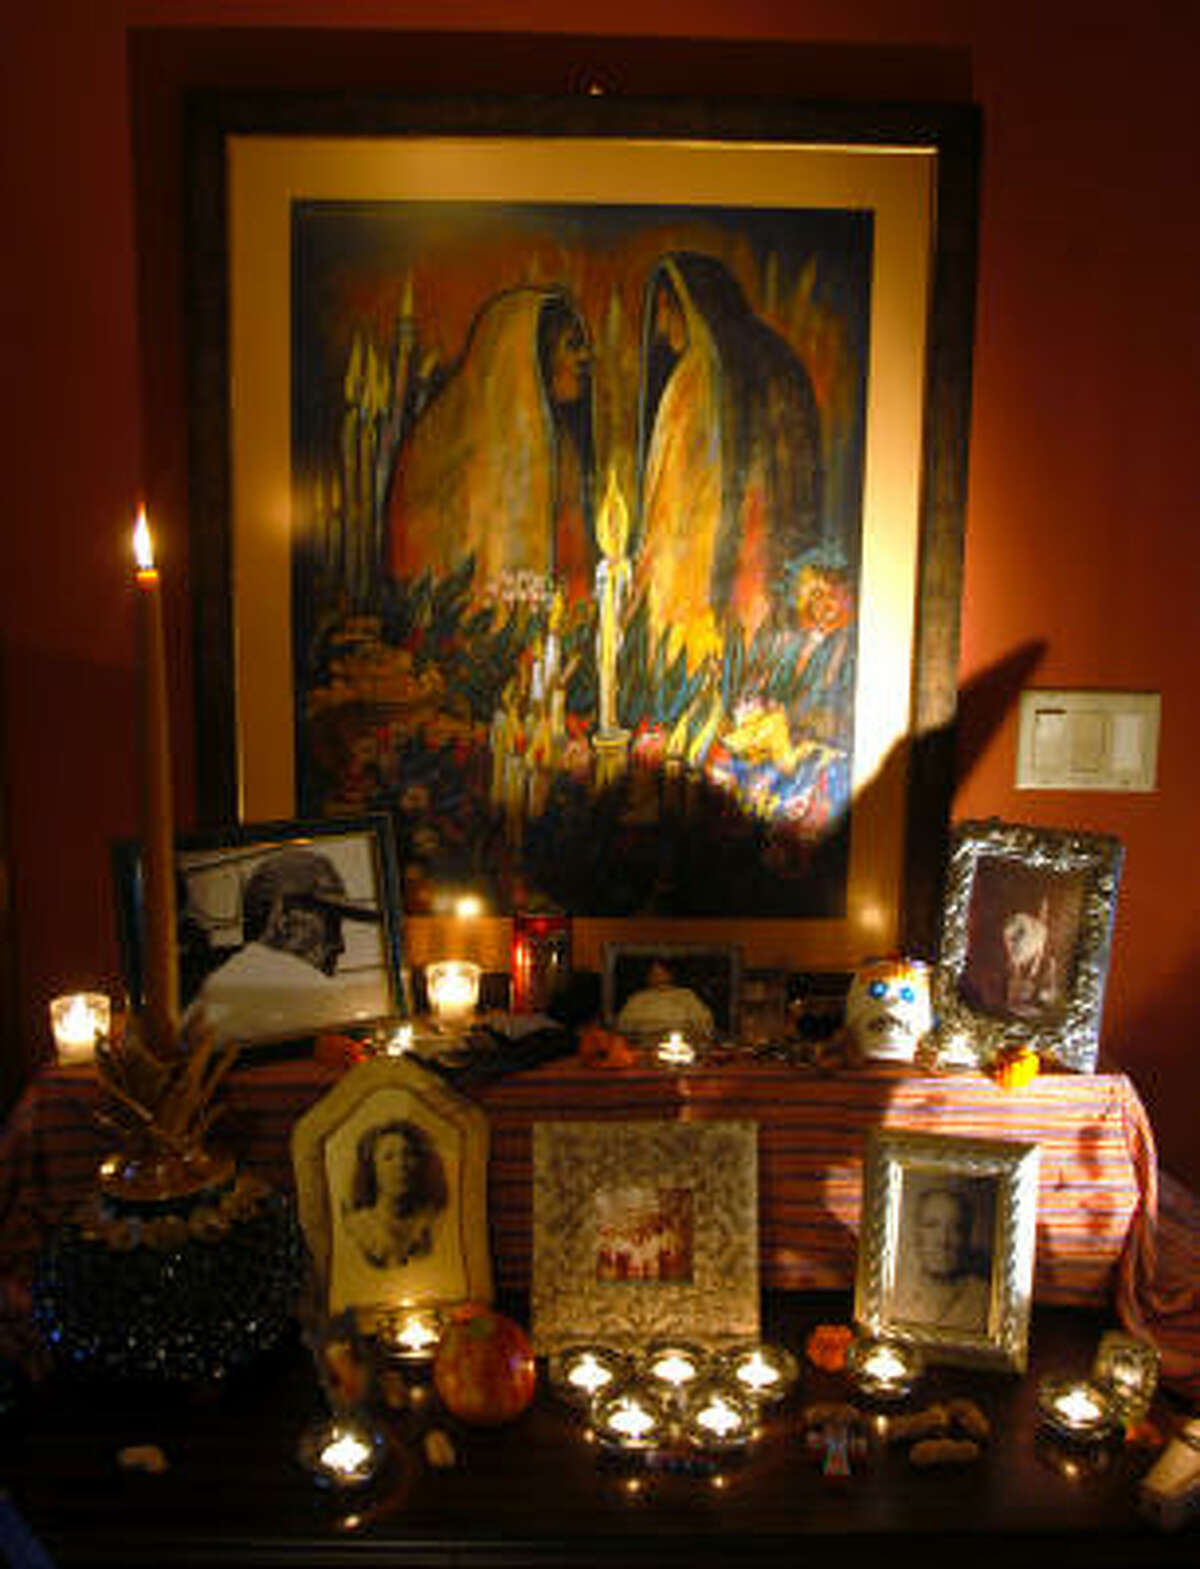 Bitty Truan of Rancho Viejo honors the memory of her late husband, George Truan, who was a professor of Art at UTB-TSC in Brownsville. Other relatives and friends also are remembered with photgraphs, personal effects and favorite food items. The altar is shown on Oct. 29, 2006.